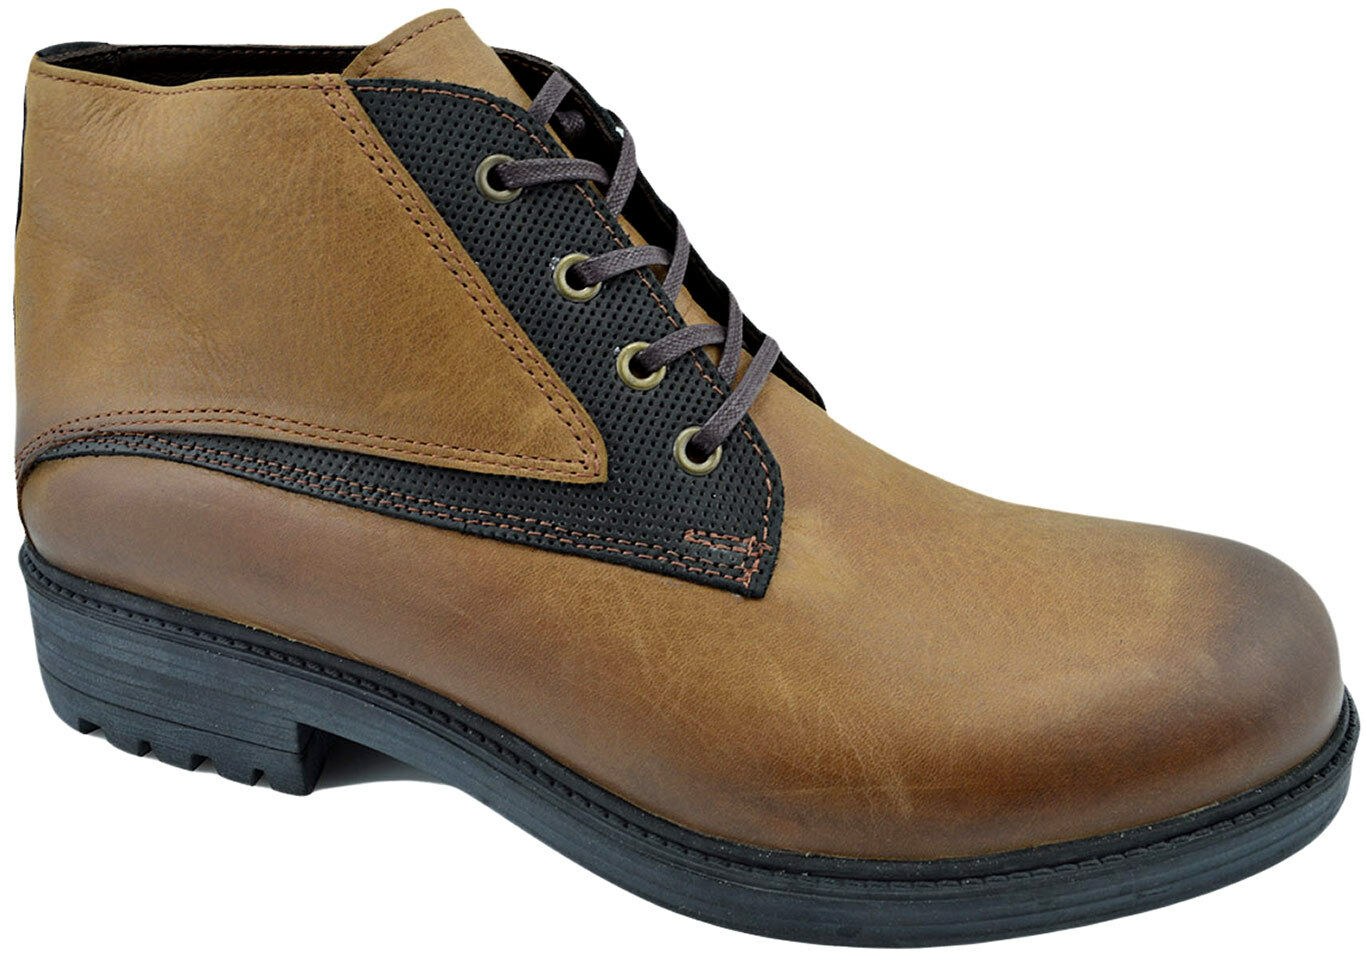 200 REACTOR Beige Brown Black Calf Leather Ankle Boots Men shoes